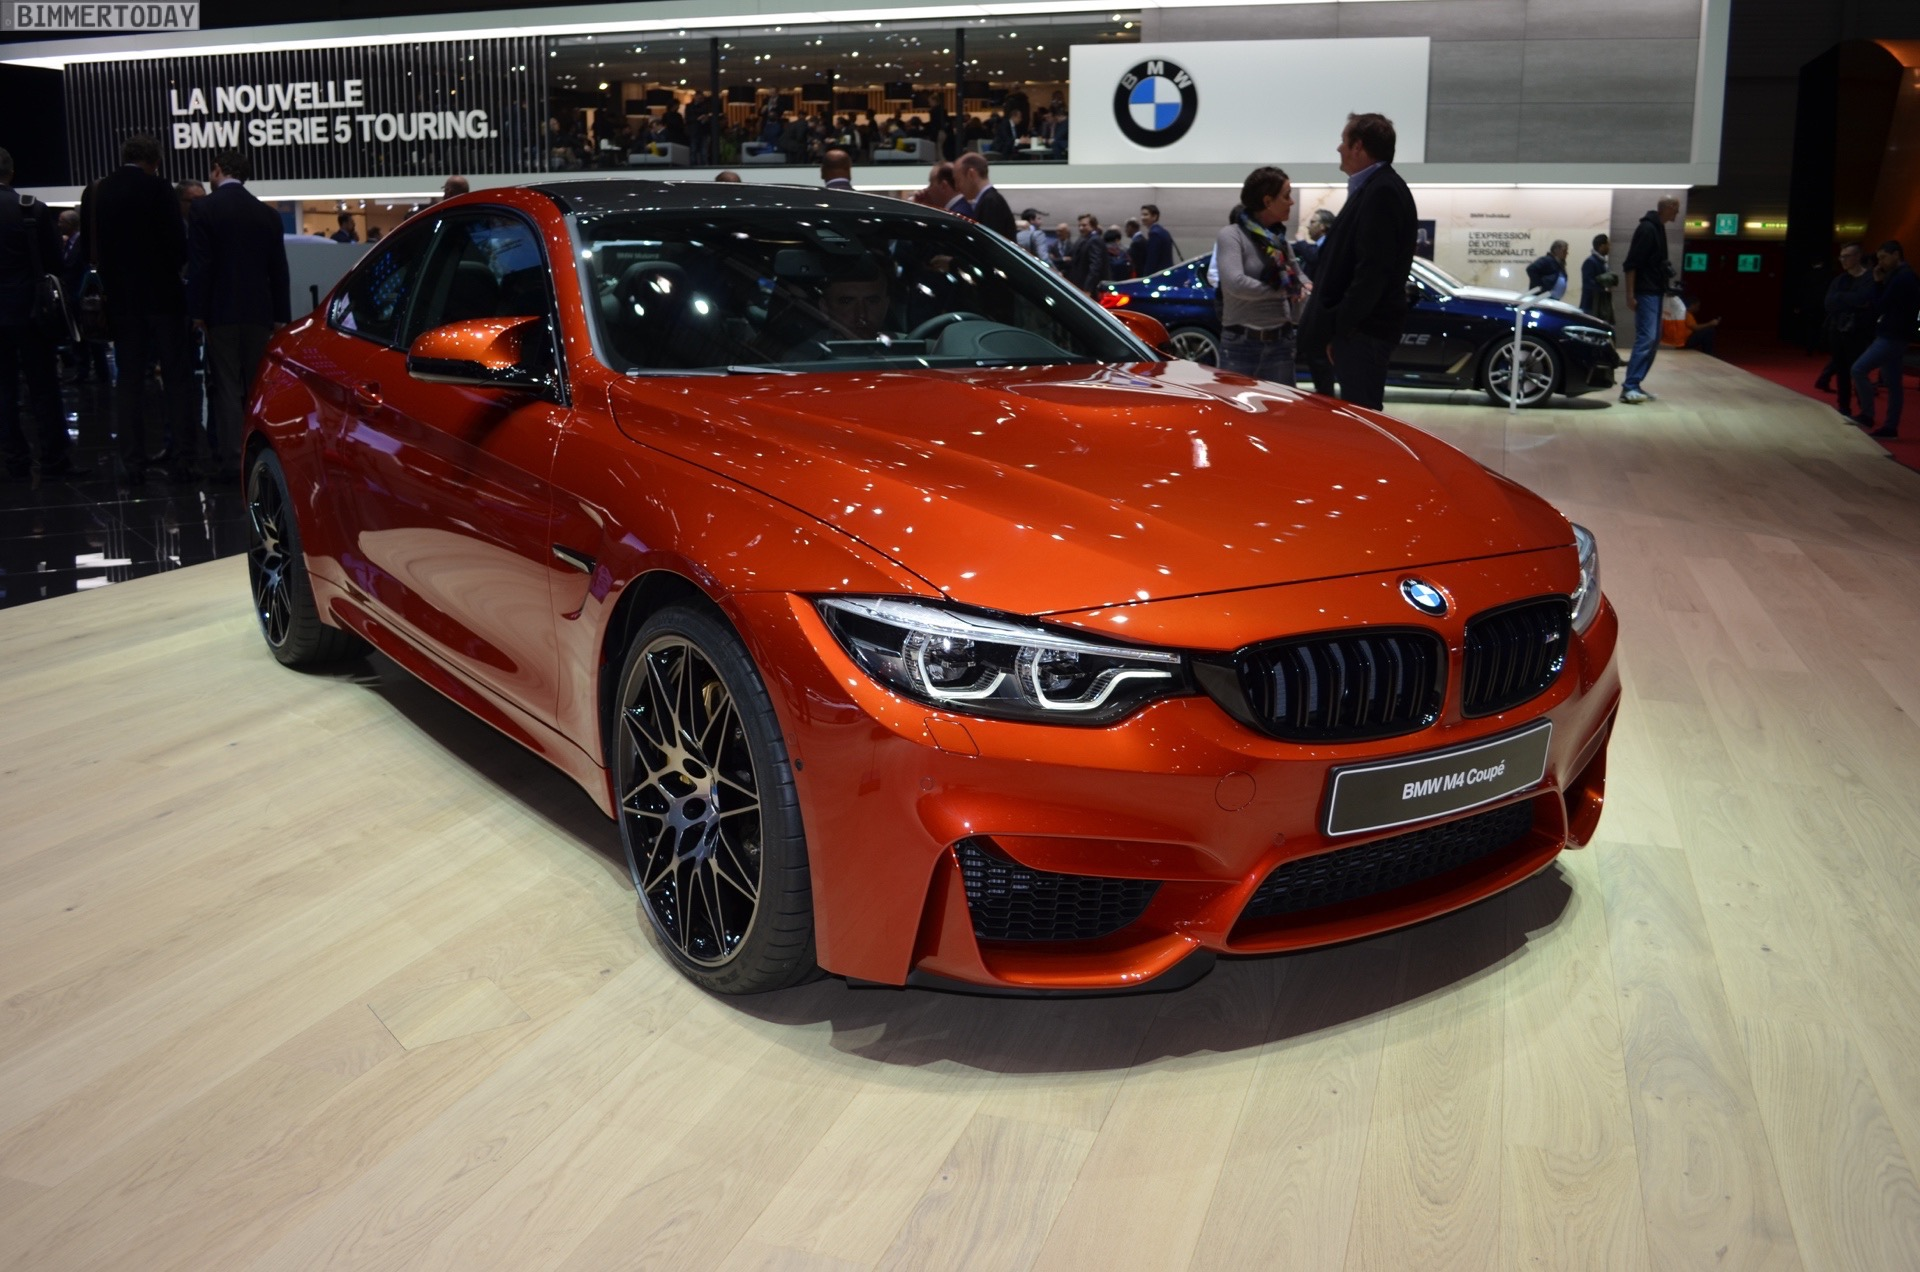 Evo Magazine Crowns The Bmw M4 Competition Package As The